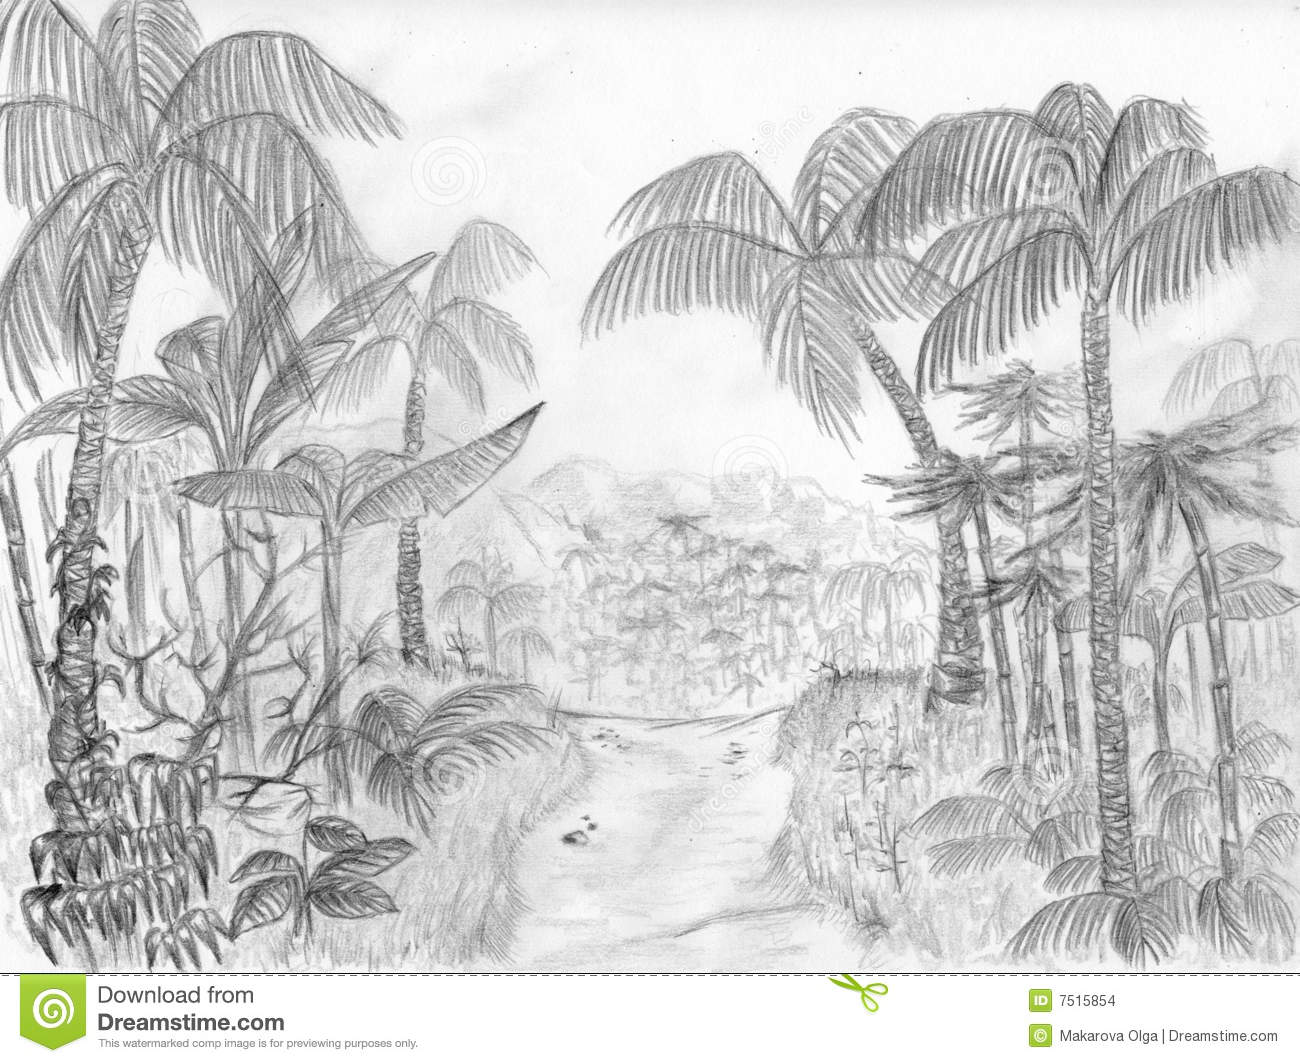 This is a road leading through the jungle pencil drawing